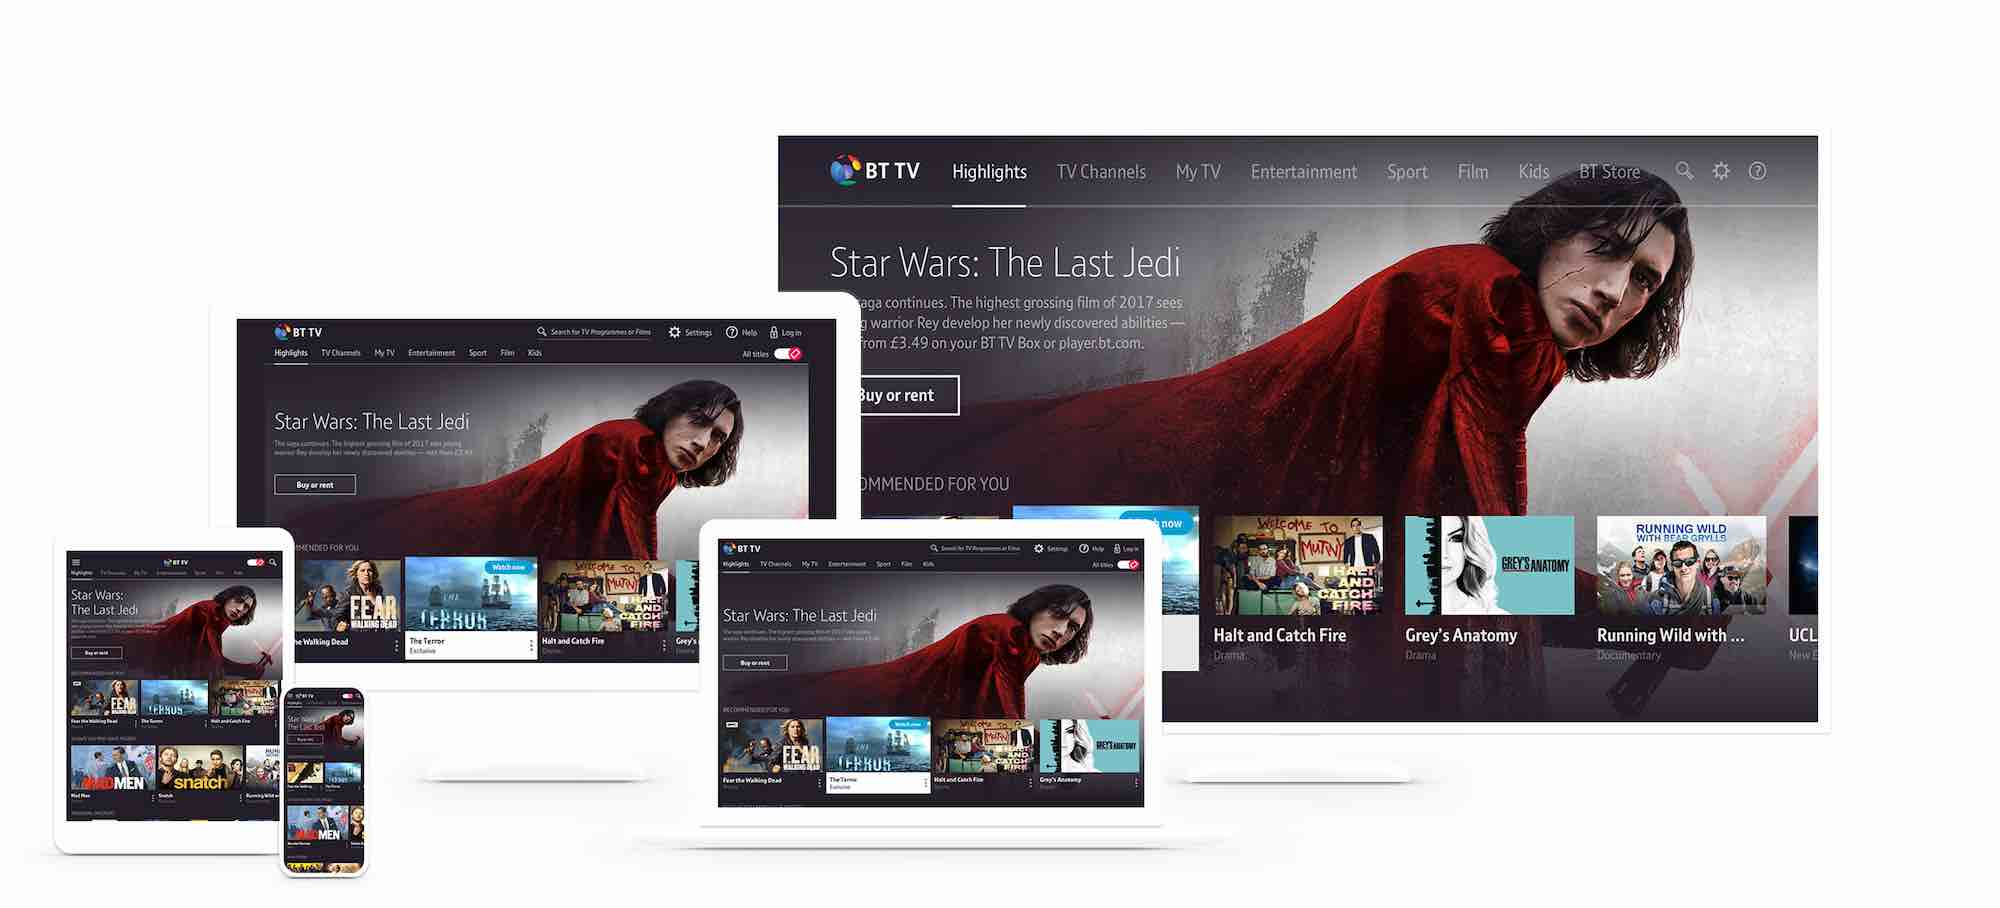 BT releases new apps for Samsung Smart TVs, Apple TV and Google